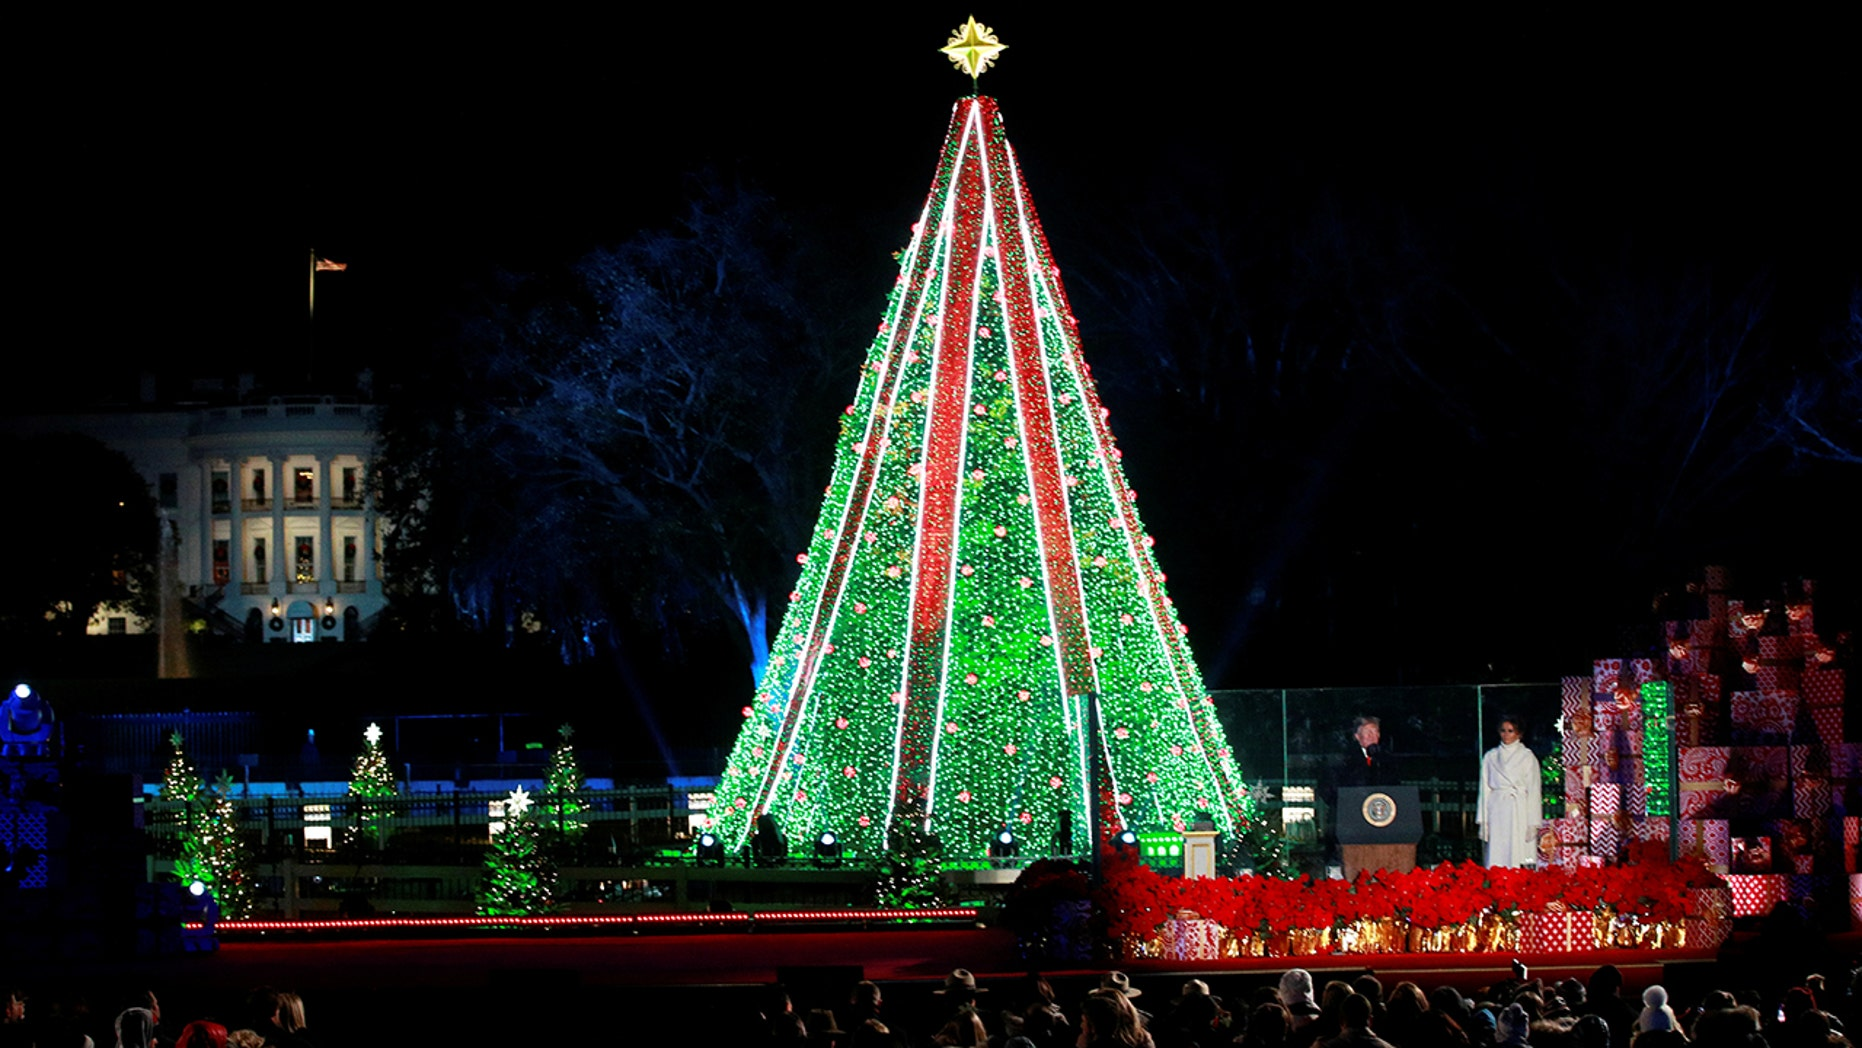 A man climbed the National Christmas Tree and refused to get down